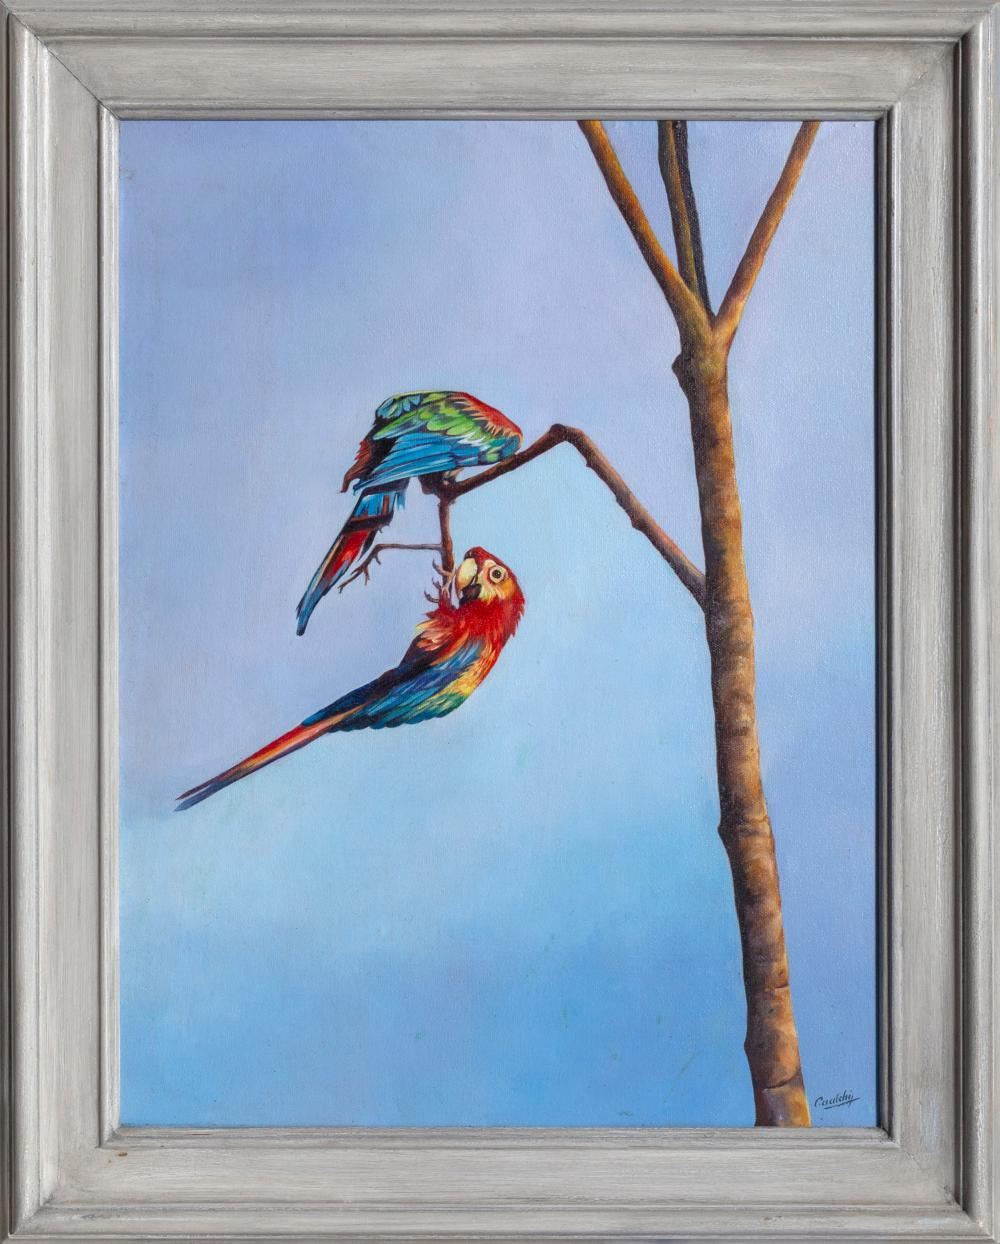 Cualchi, Lovely Birds (Two Scarlet Macaw Parrots), Oil Painting